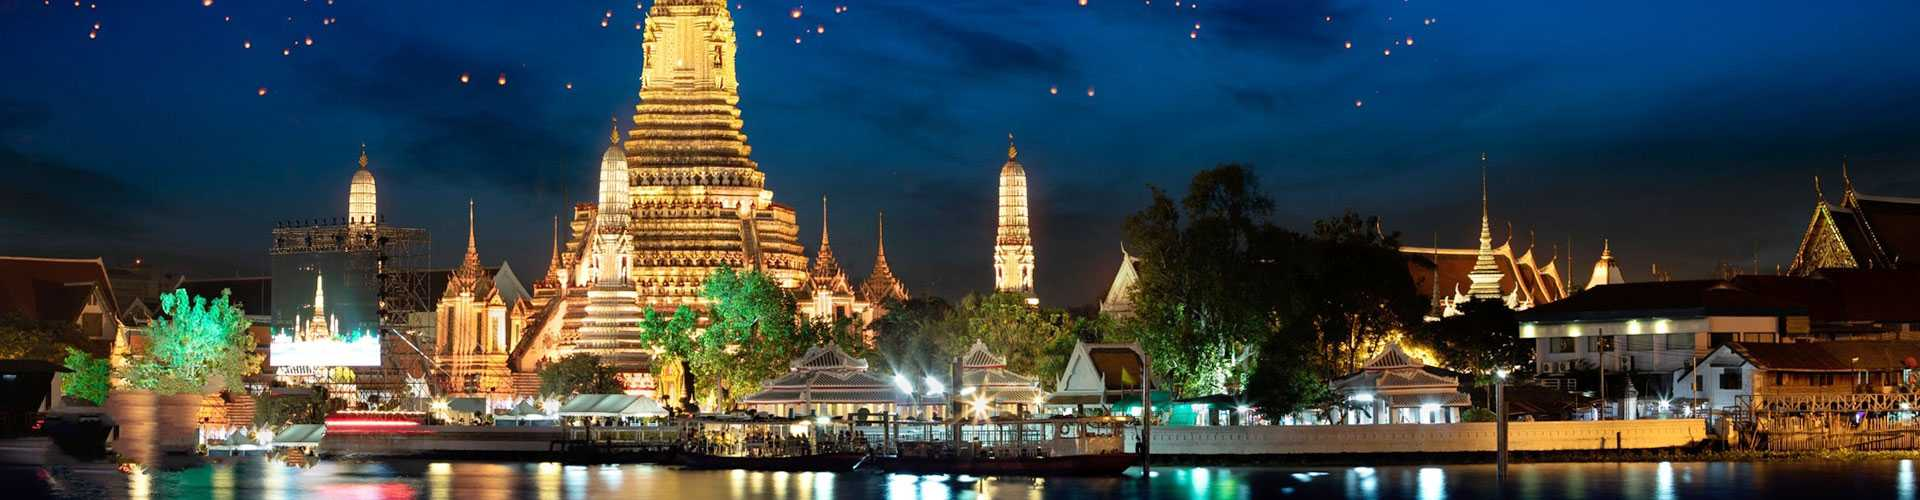 bangkok attraction